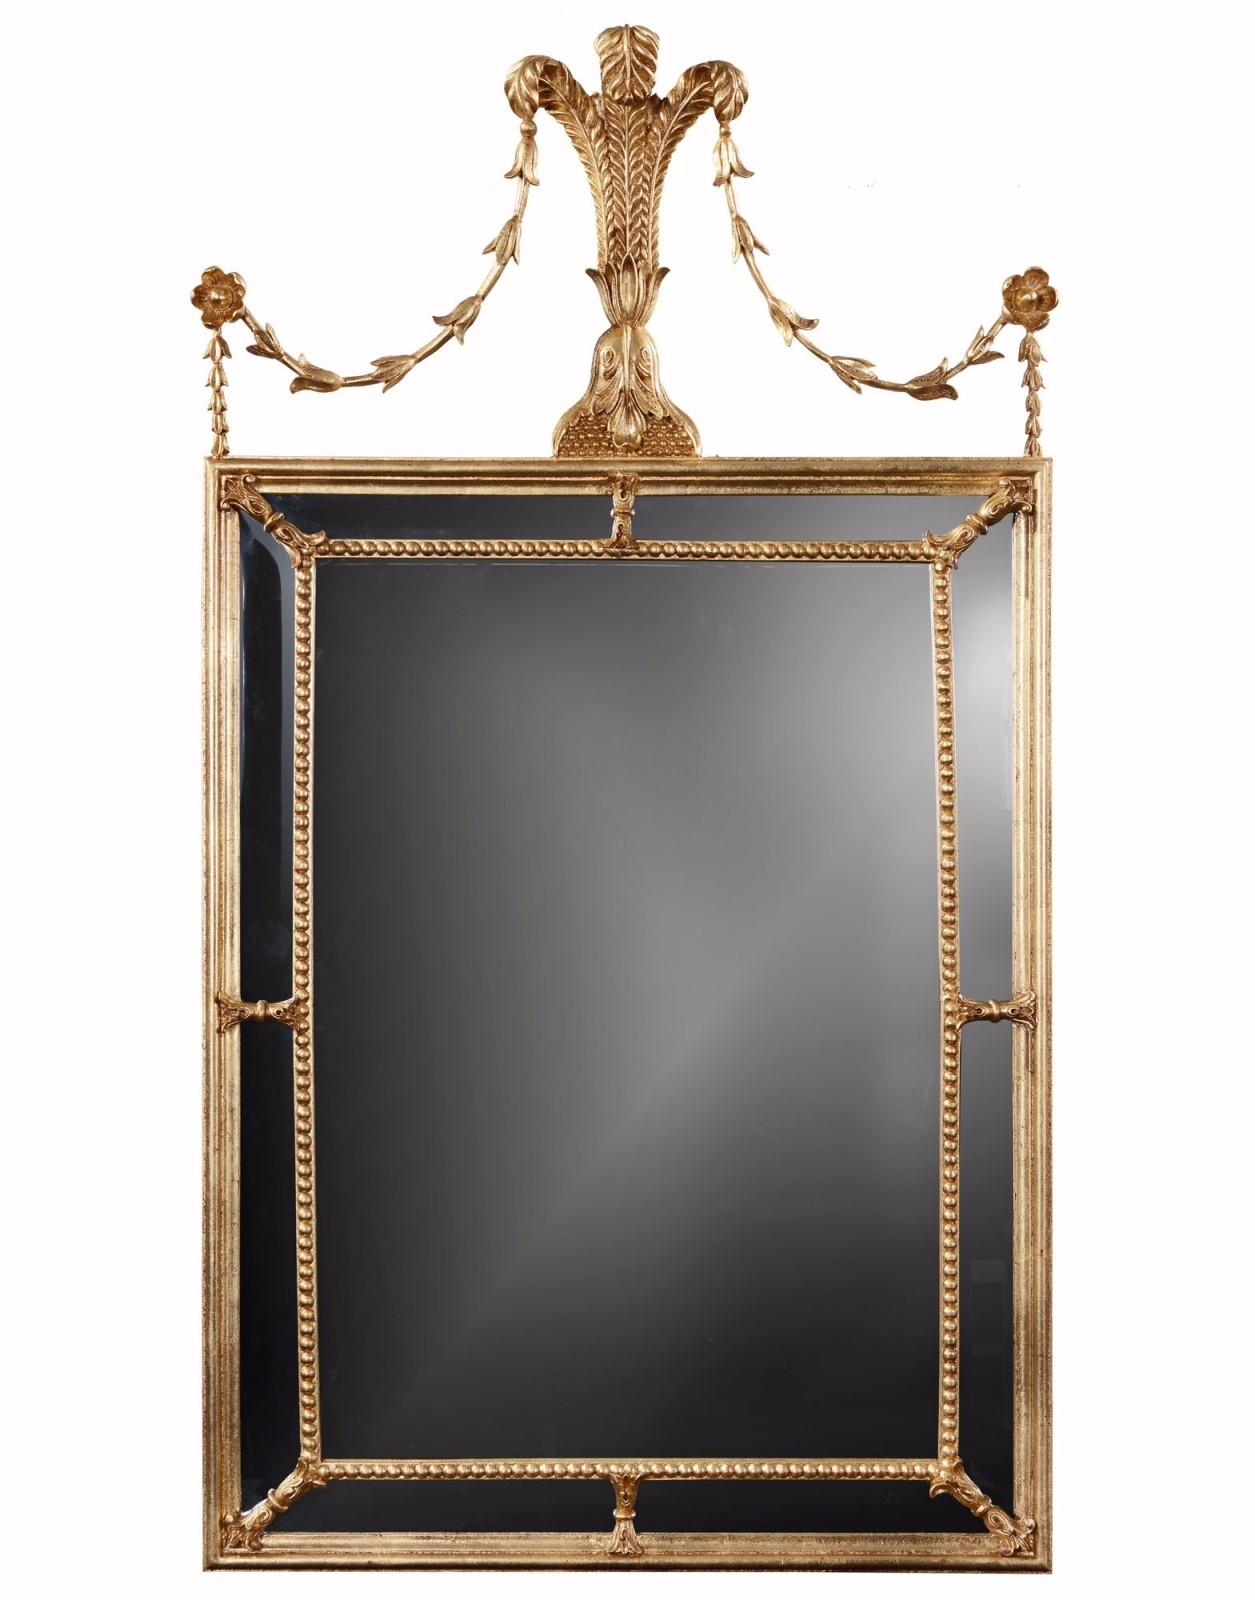 Giltwood wall mirror